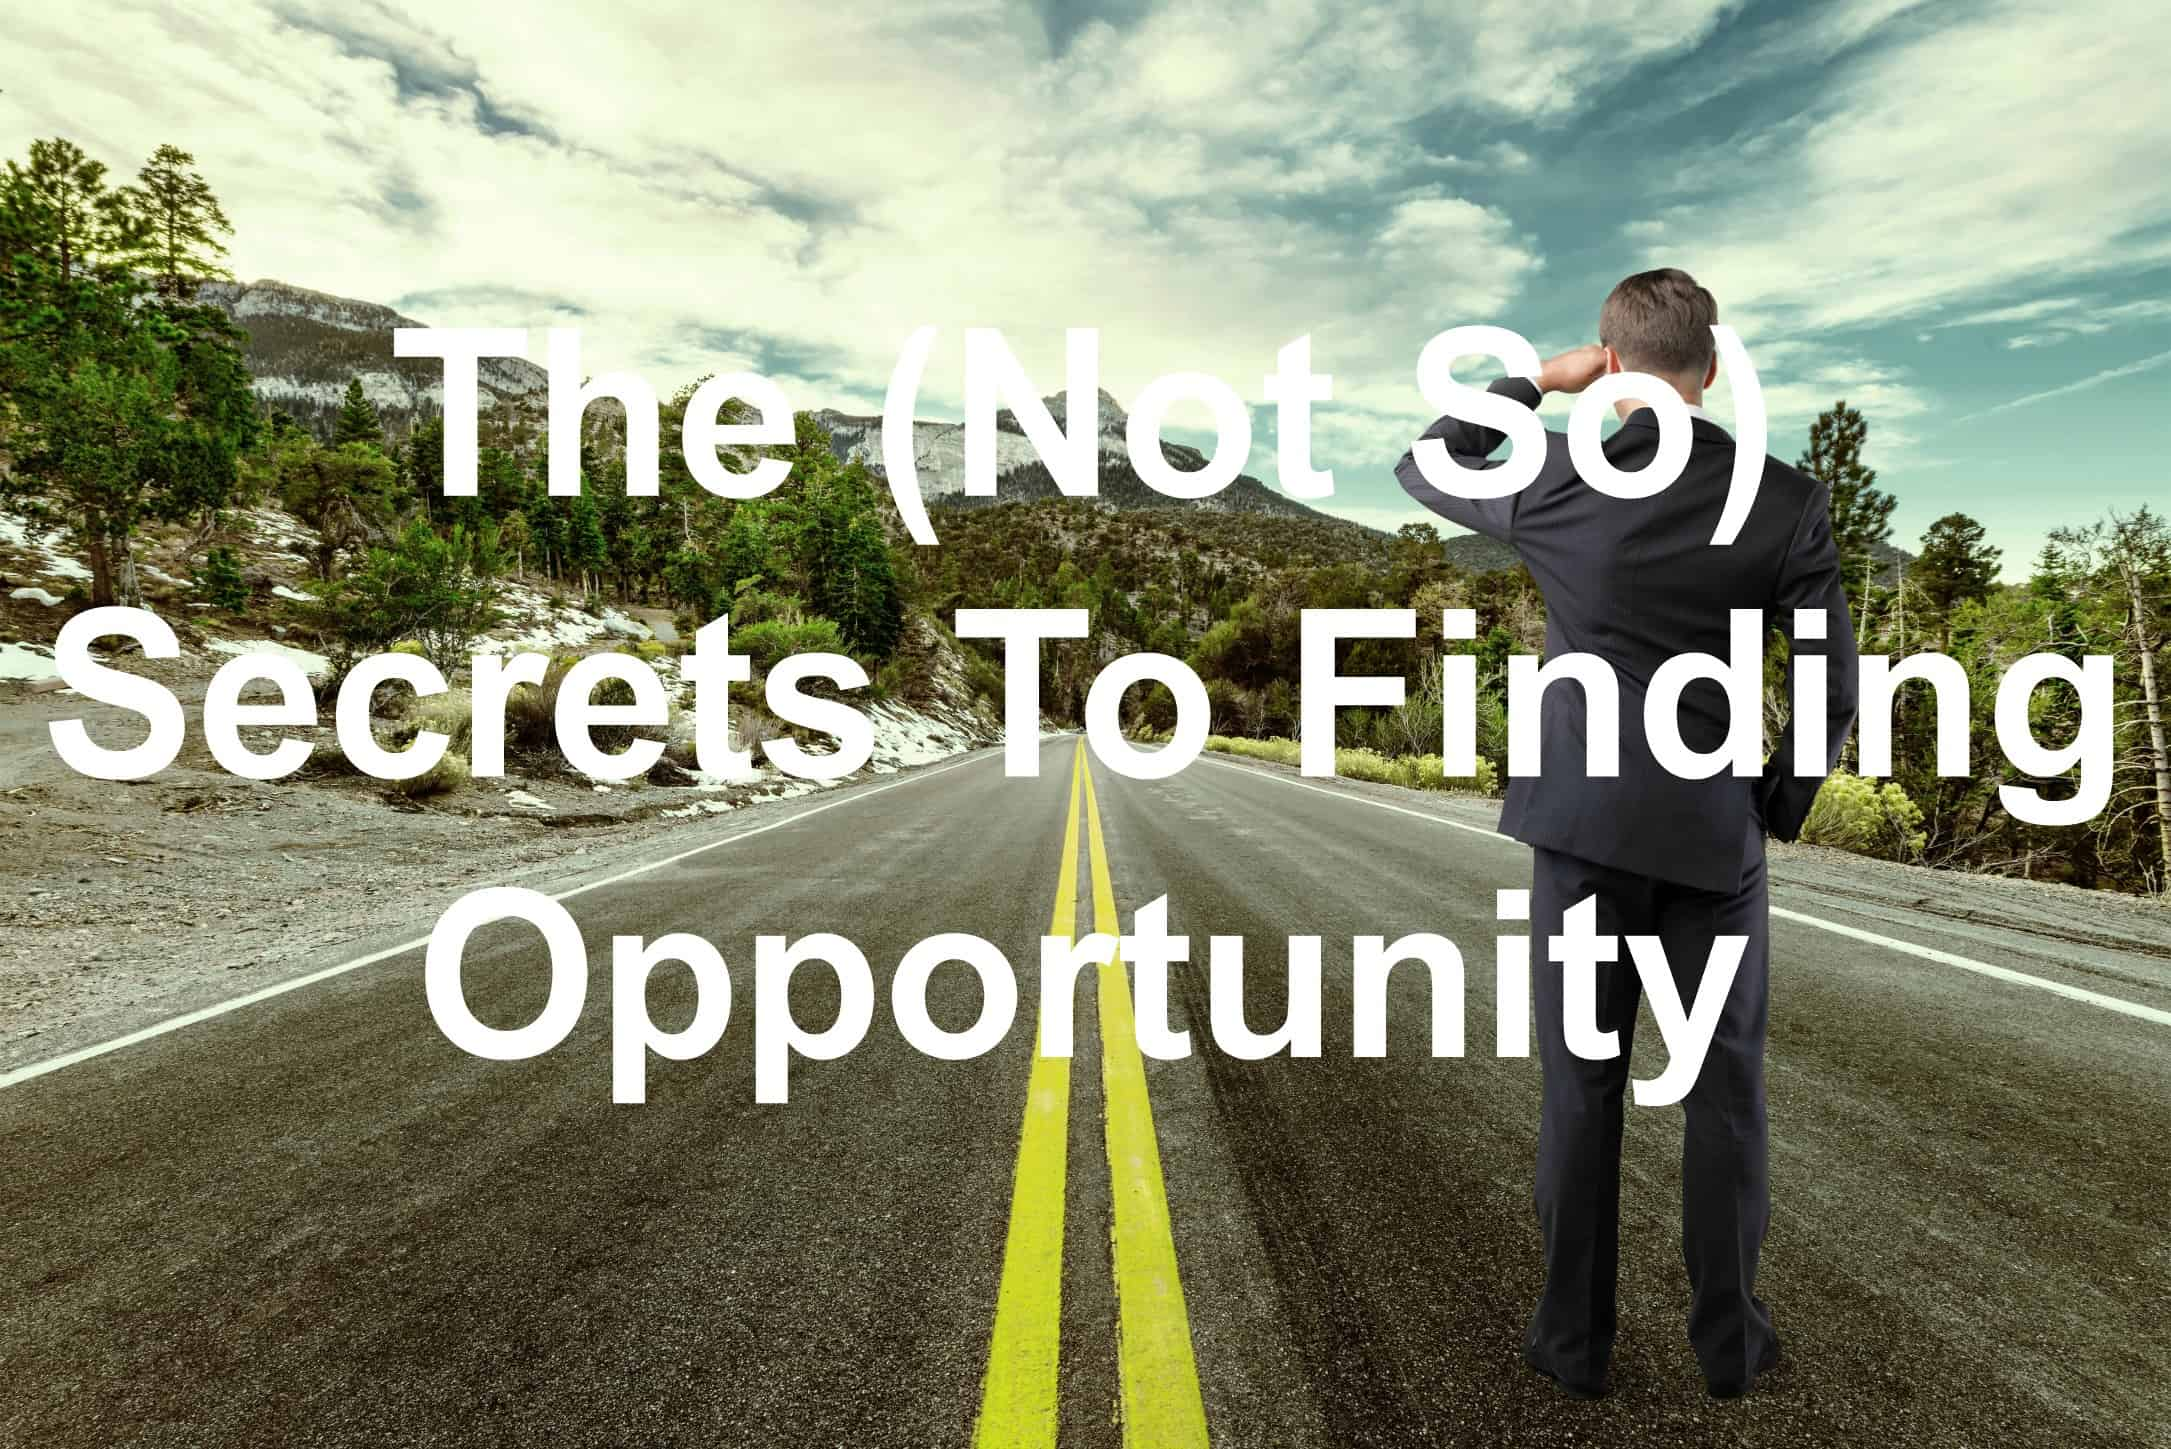 You can find opportunity anywhere